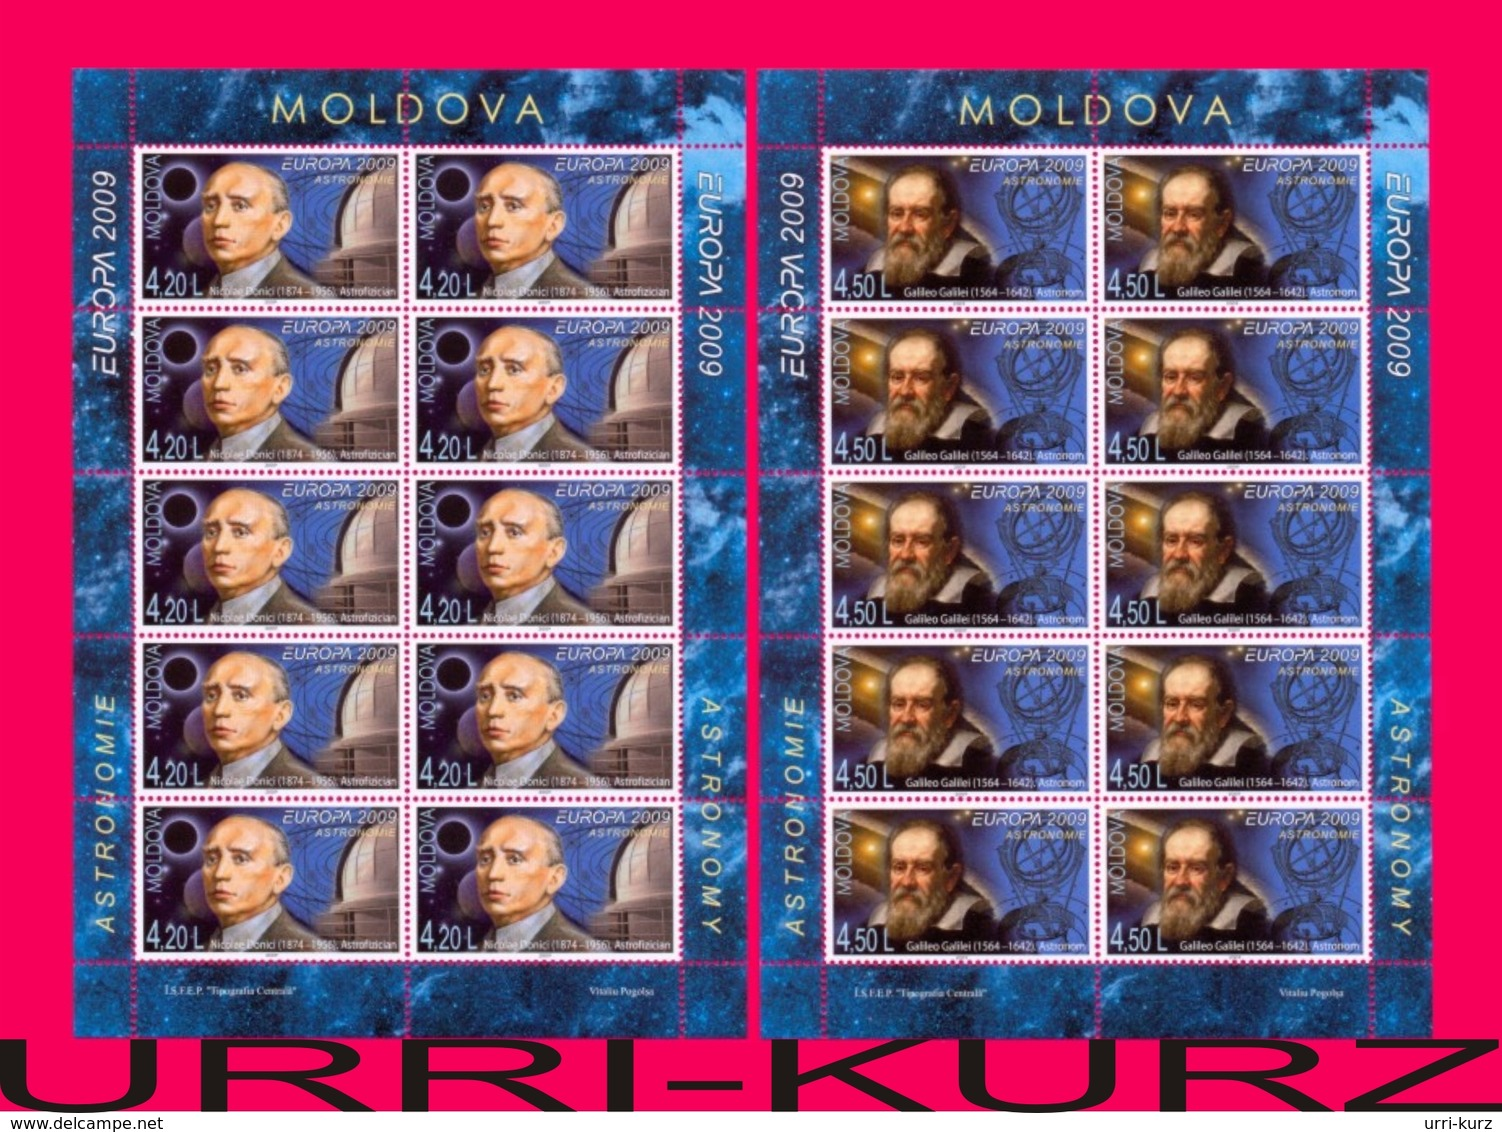 MOLDOVA 2009 Europa CEPT Astronomy Space Famous People Scientists Galileo Galilei Nicolae Donici 2 M-s Mi Klb.650A-651A - Space